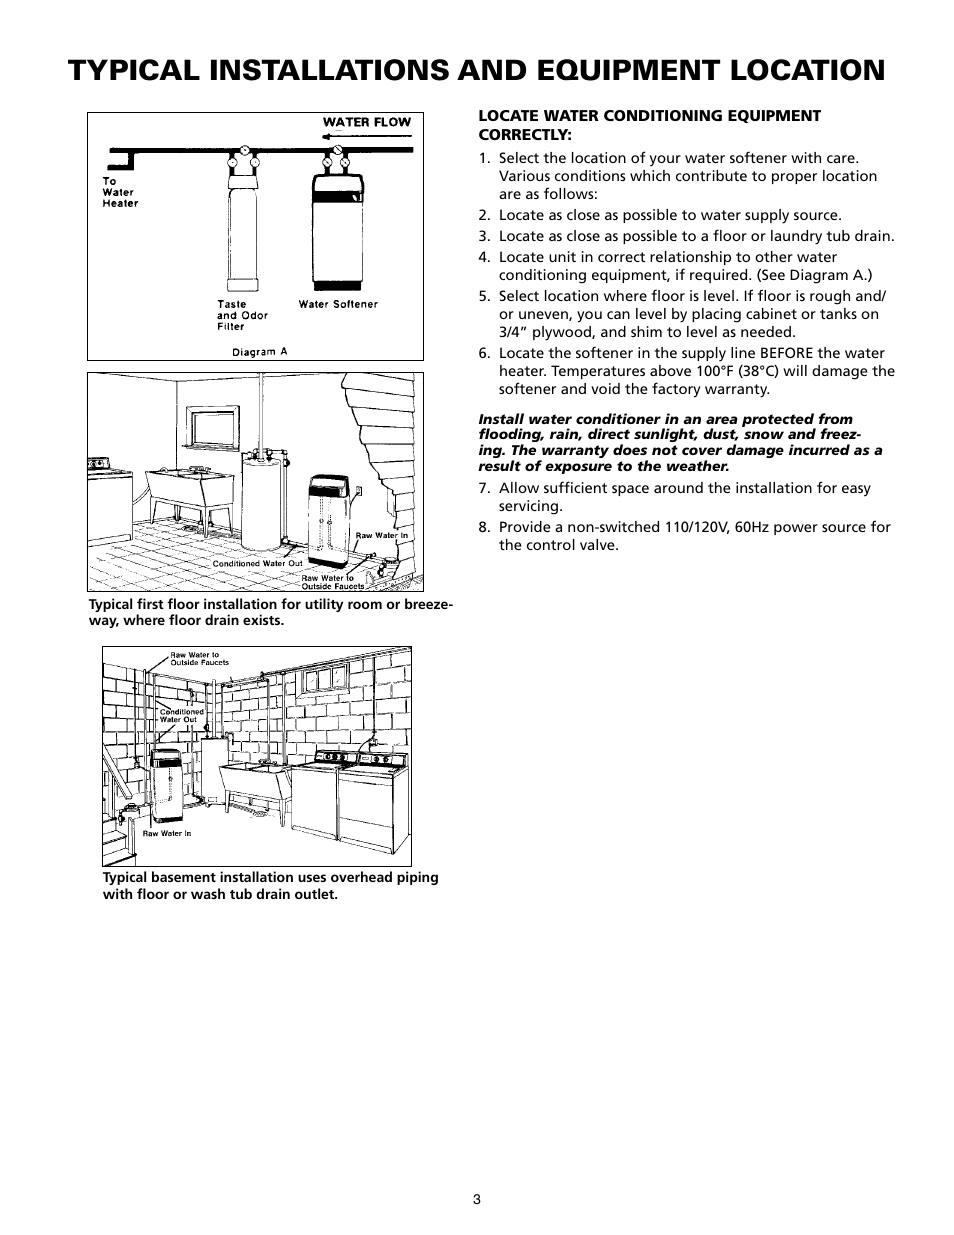 Typical installations and equipment location | Star Water Systems Water  Softener User Manual | Page 3 / 38